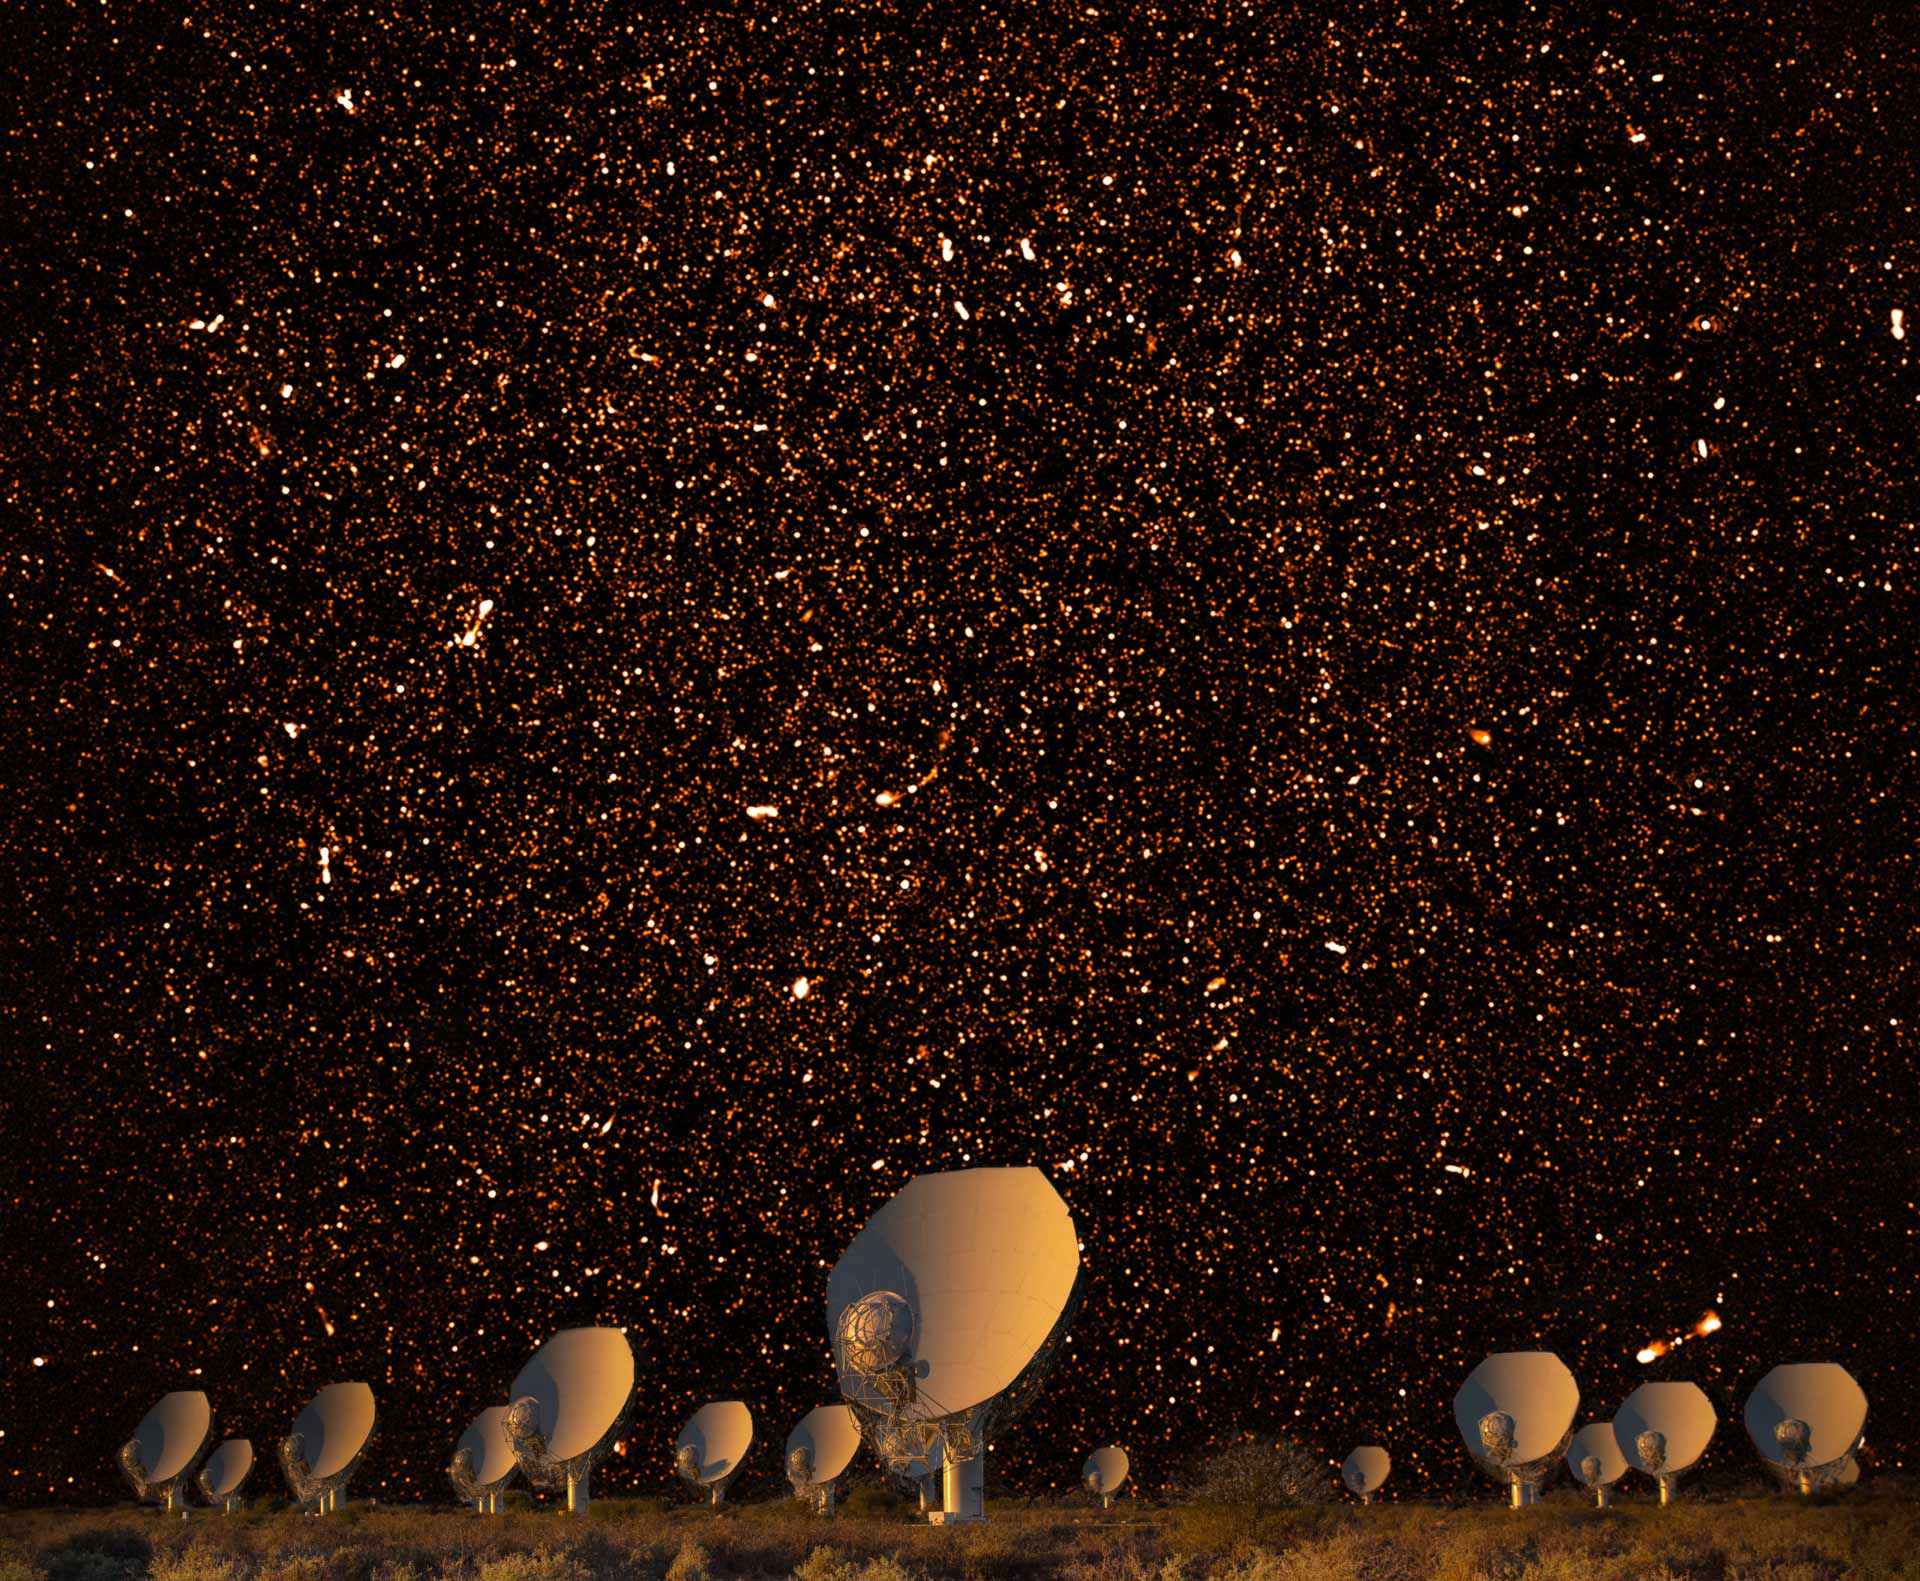 Meerkat Radio Telescope Spots Thousands Of Star Forming Galaxies Astronomy Sci News Com